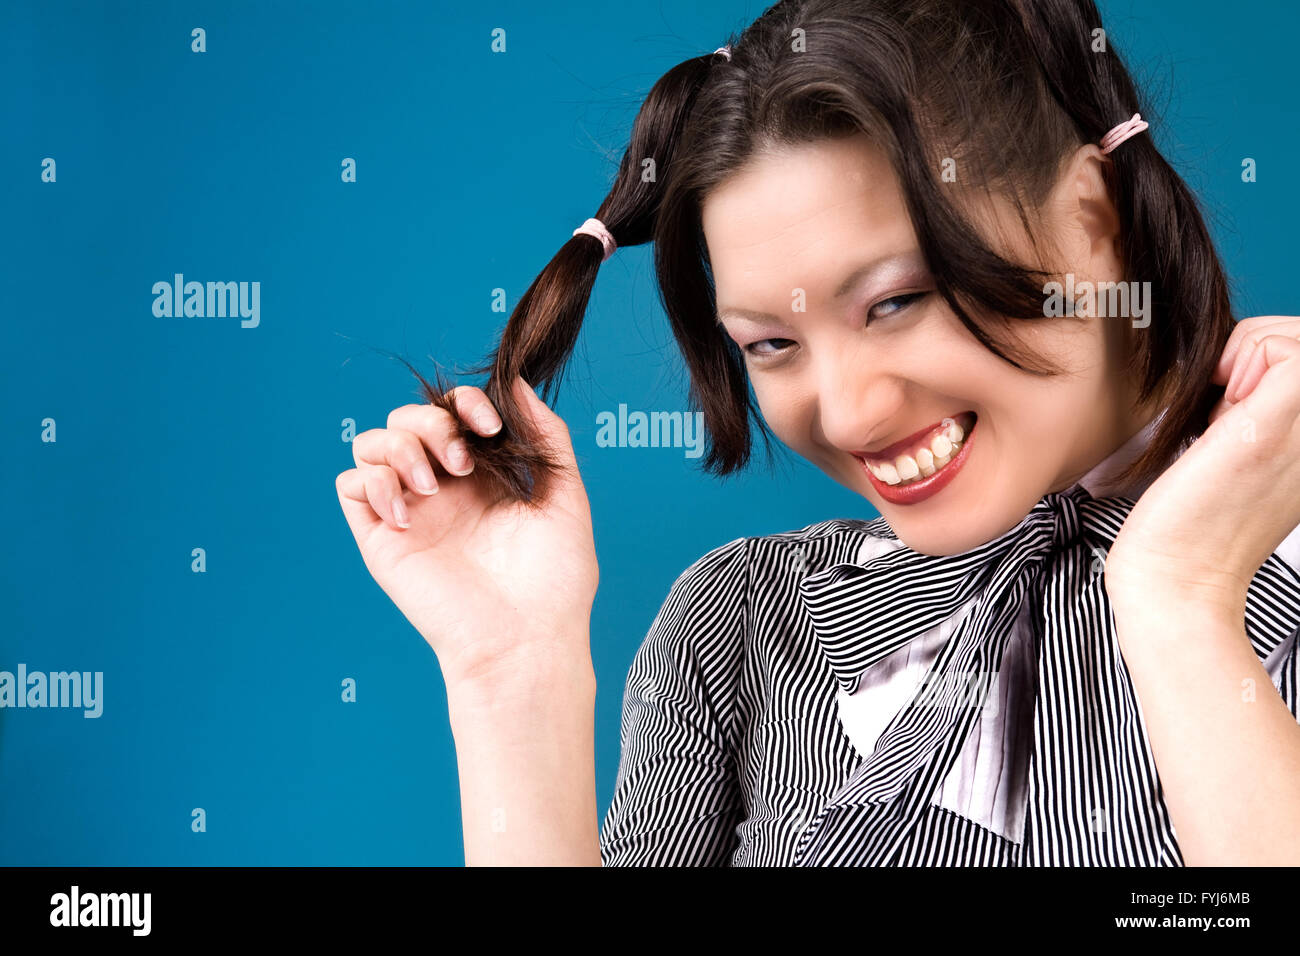 Grinning with my ponytails - Stock Image